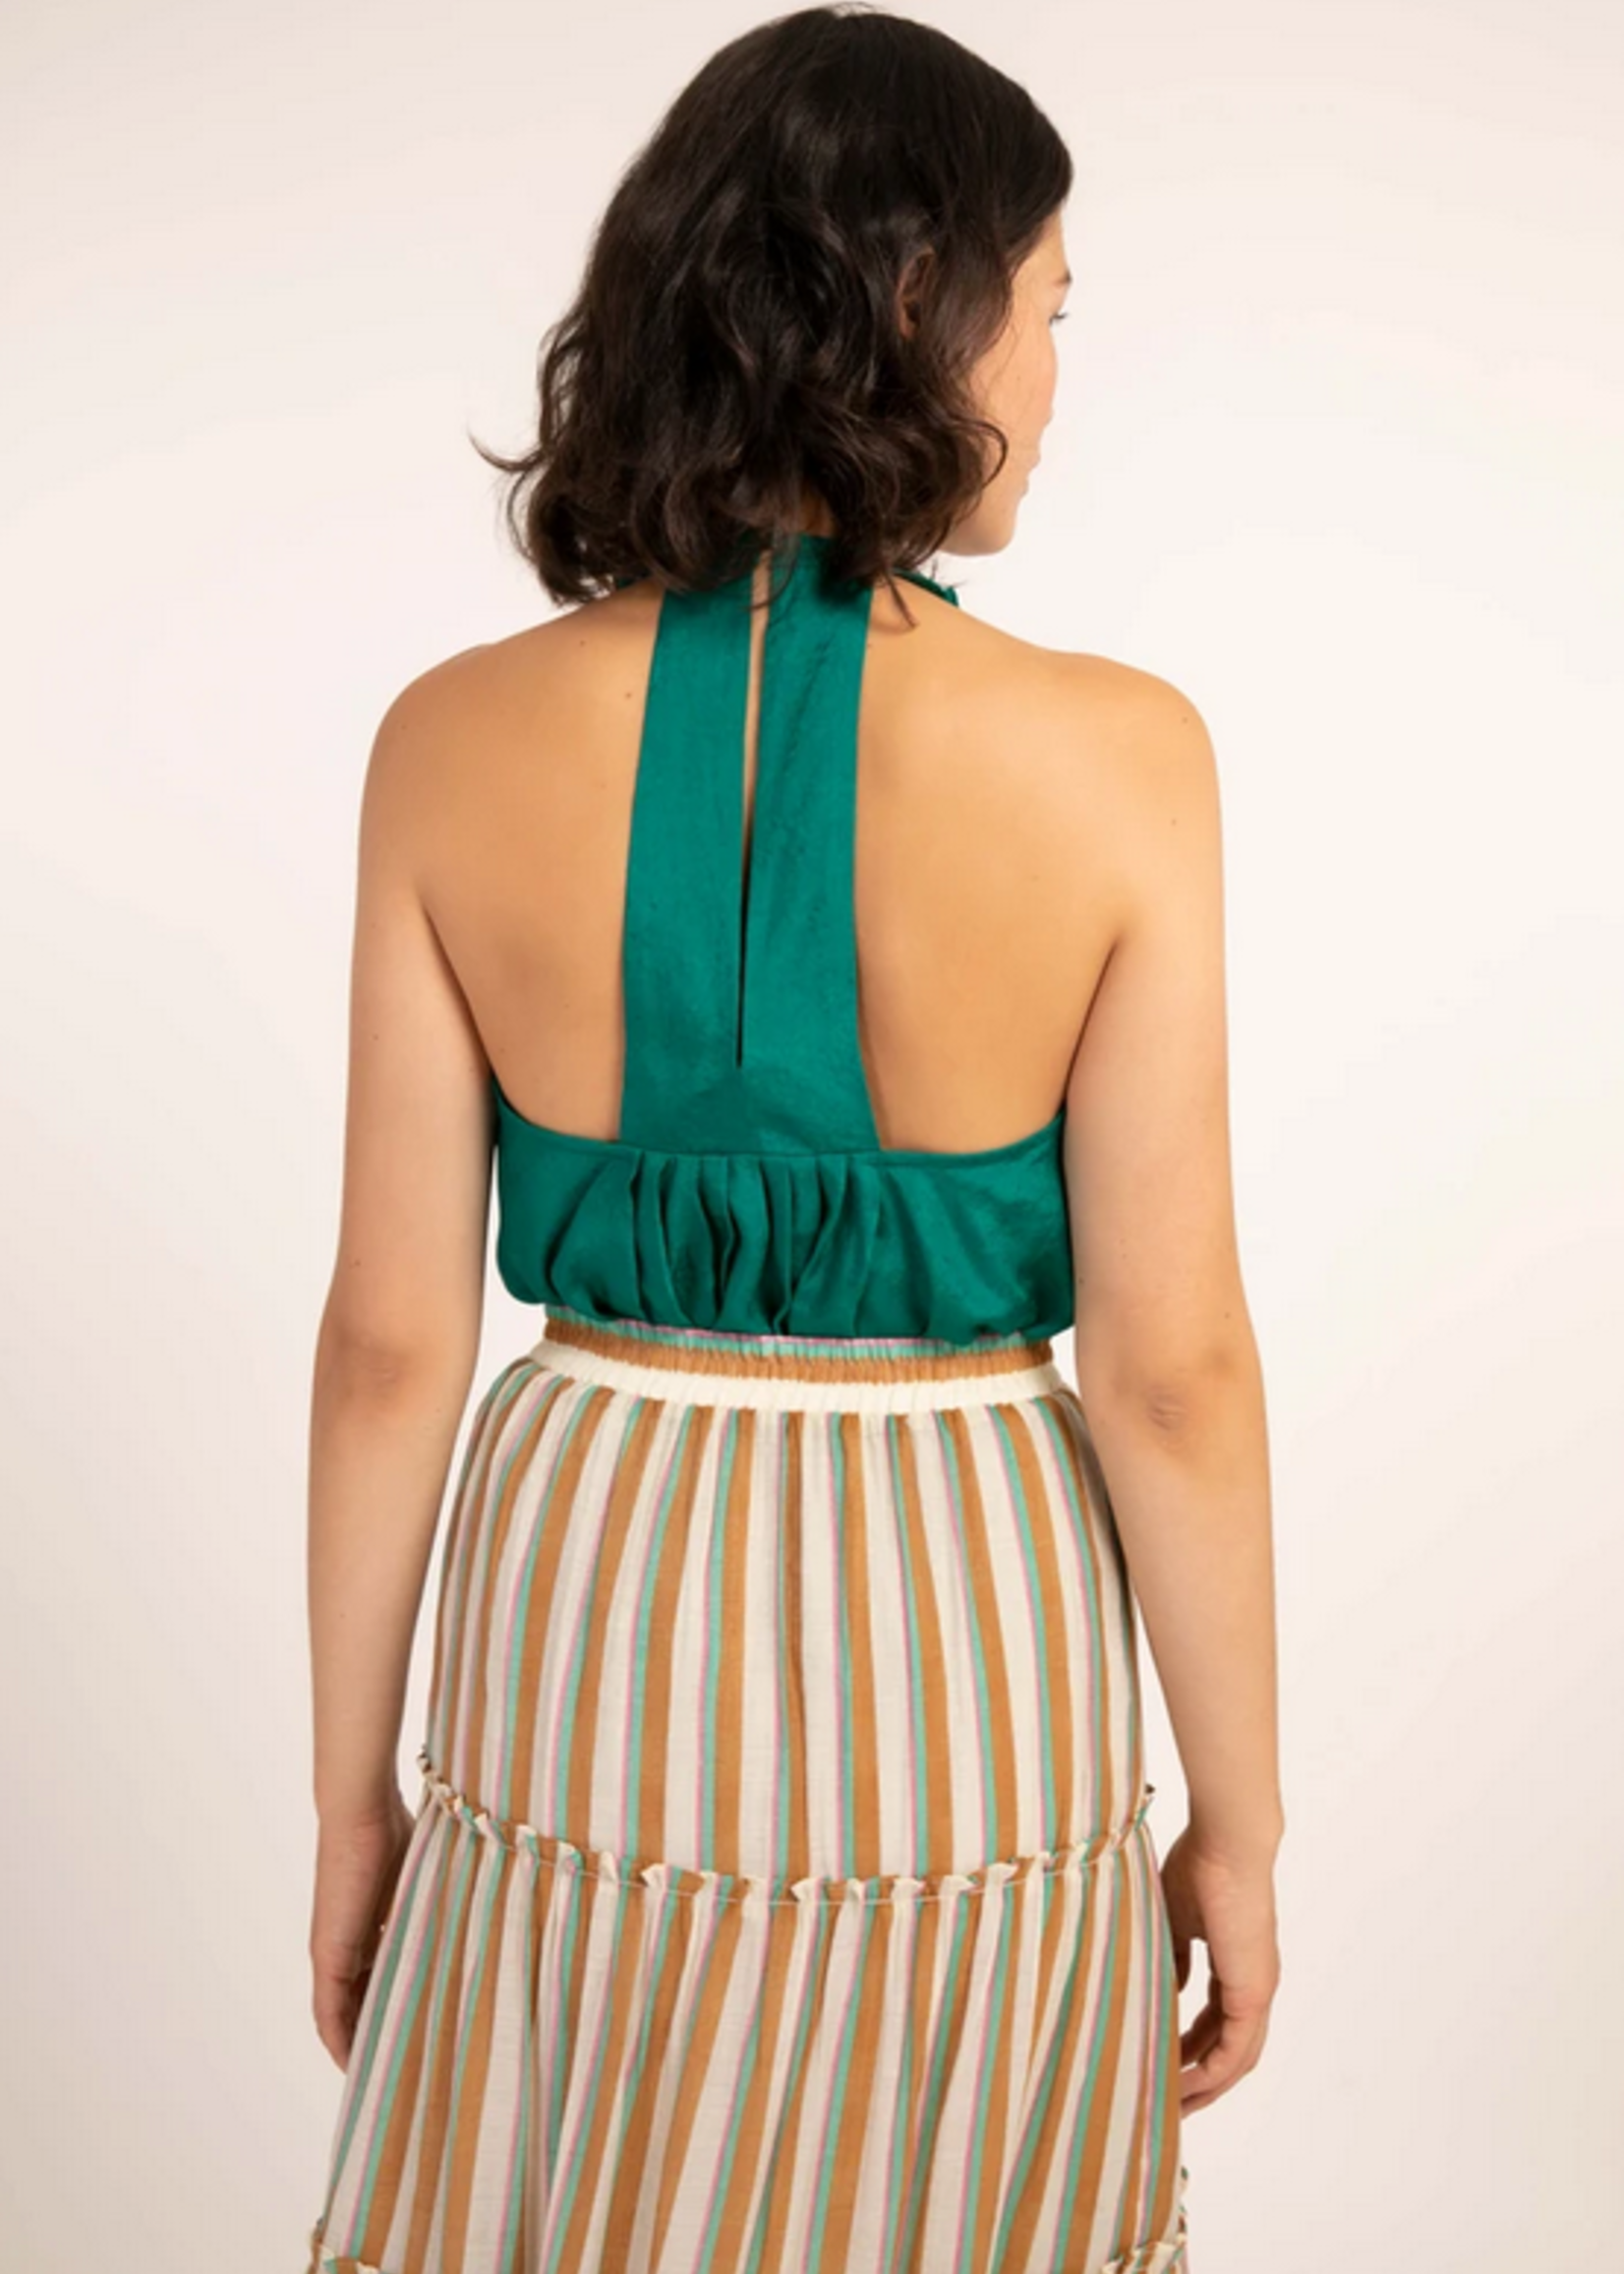 Elitaire Boutique Carvi Woven Top in Emerald